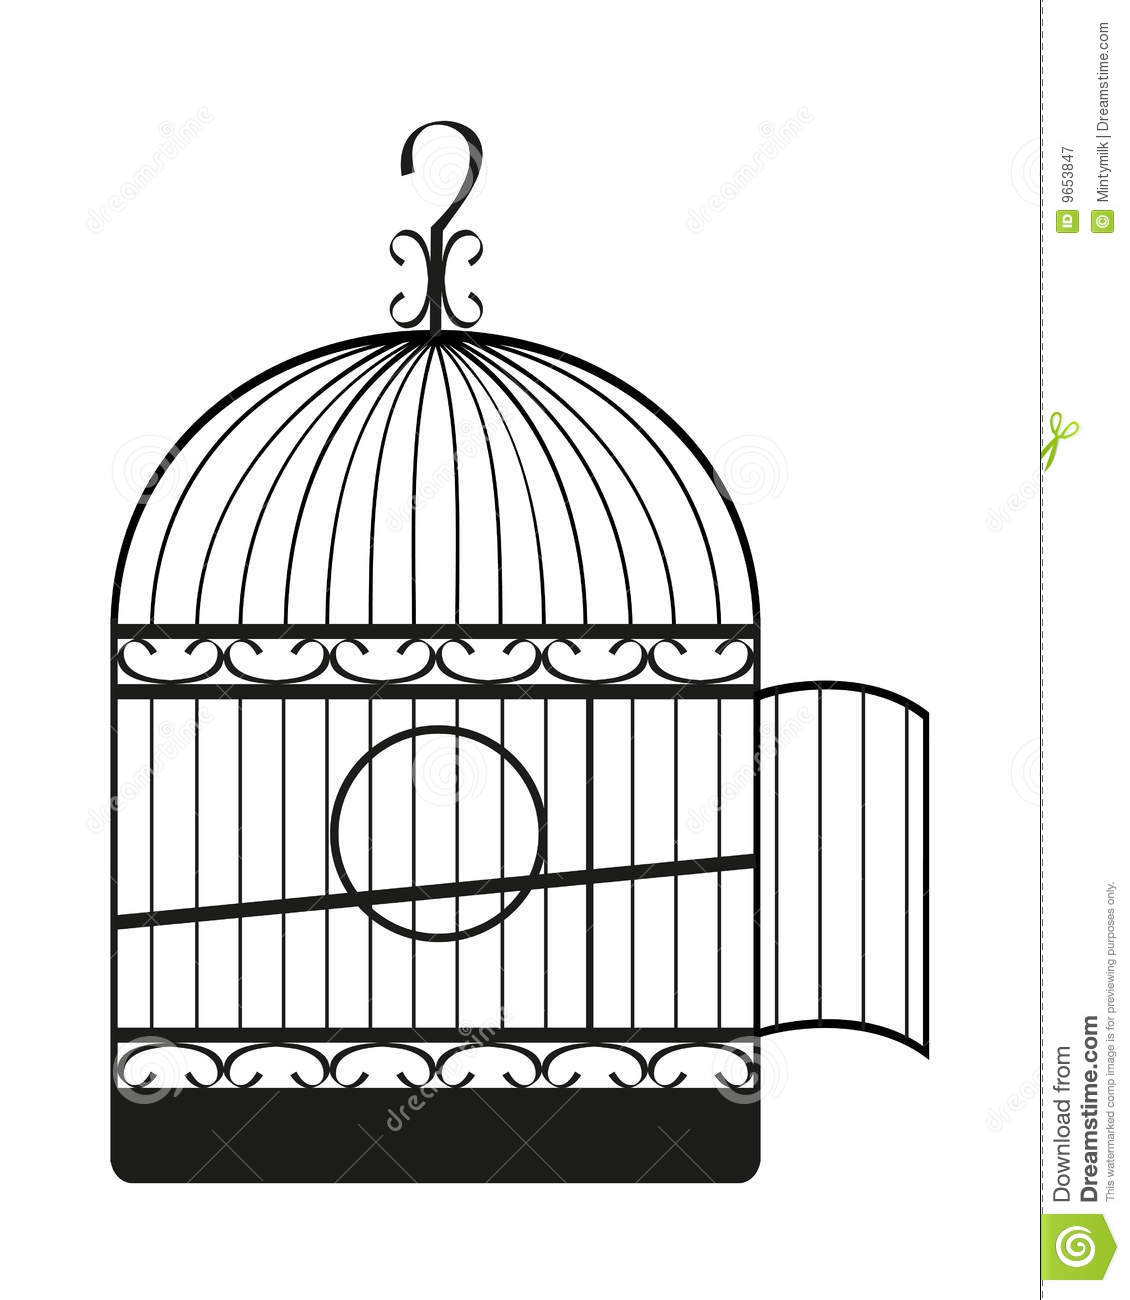 Cage d 39 oiseau illustration stock illustration du tra age - Dessin oiseau en cage ...